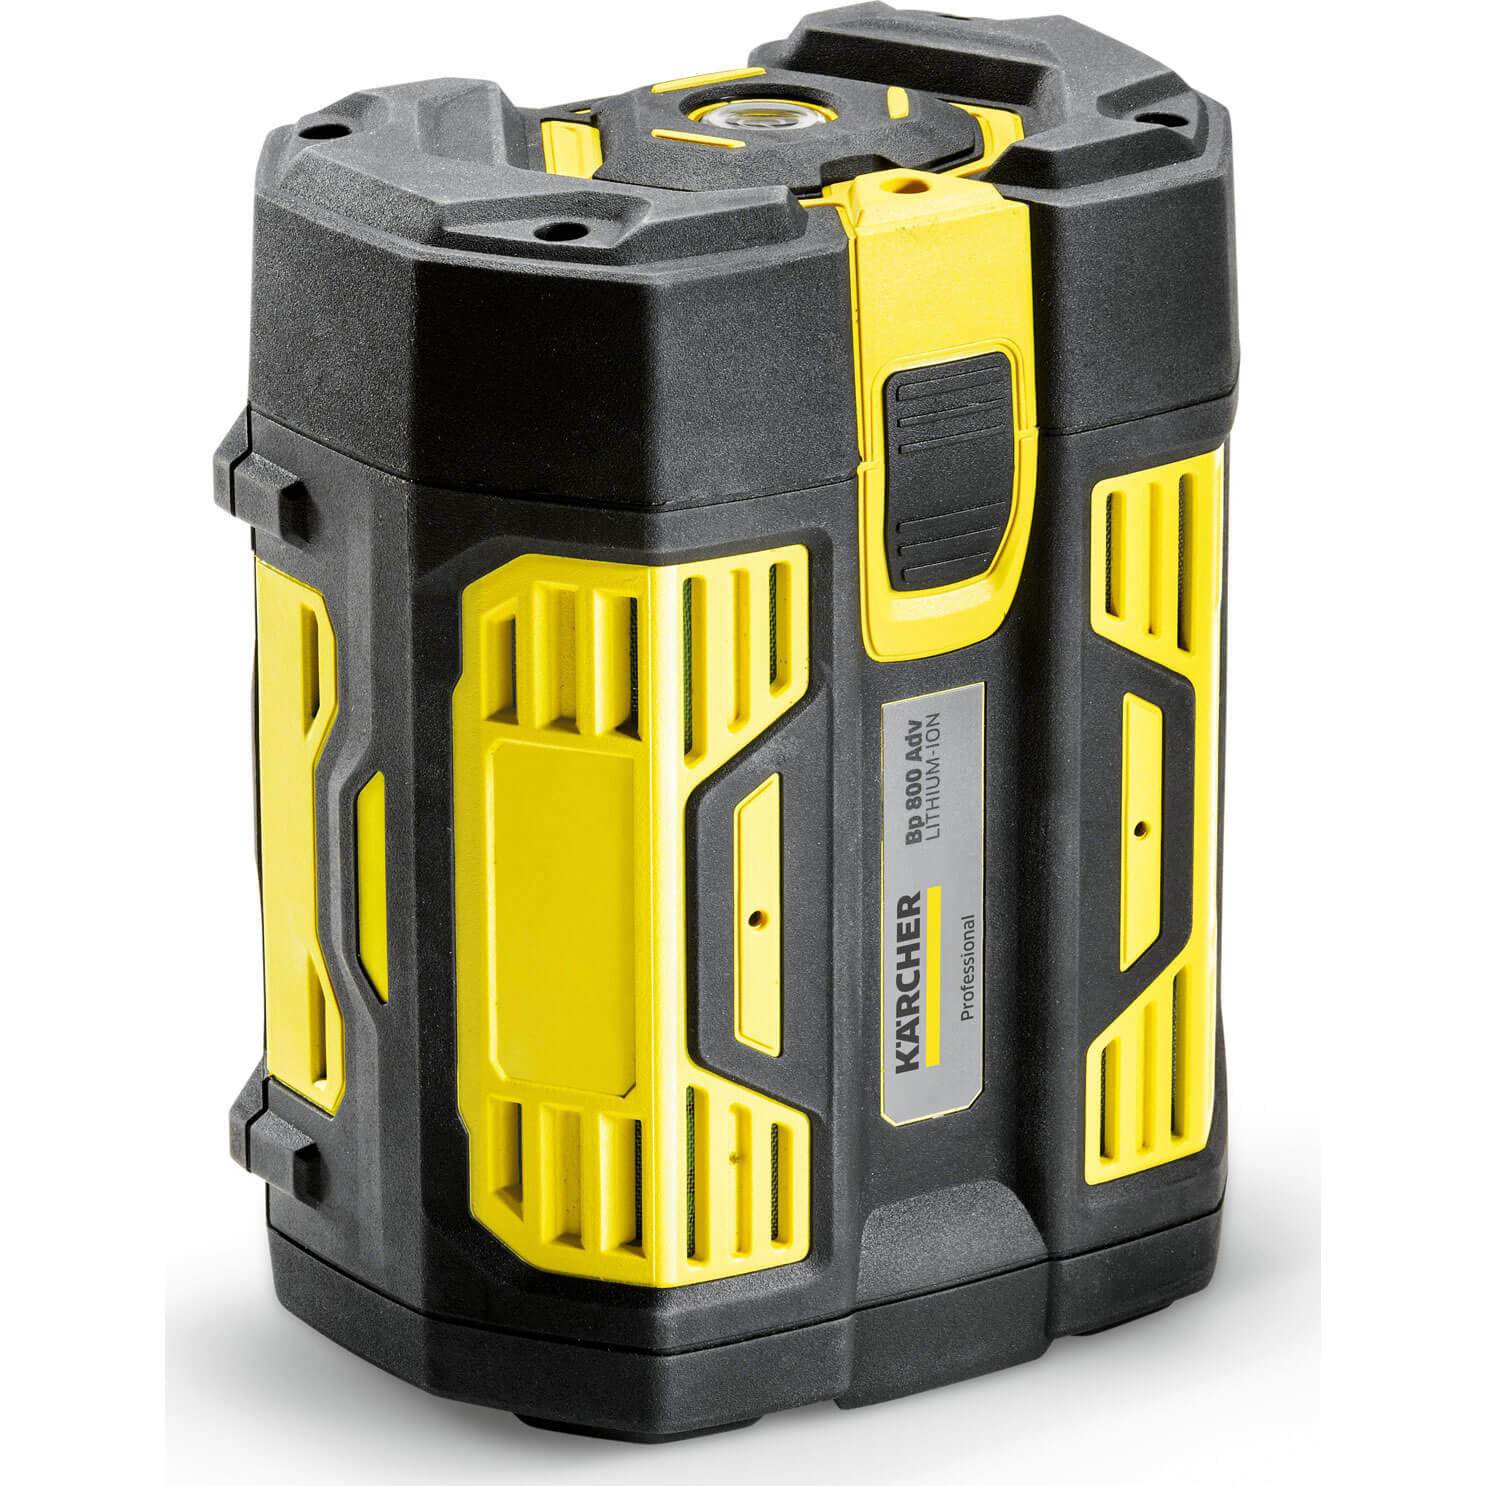 Karcher BP 800 50v Cordless Liion Battery 7.5ah 7.5ah